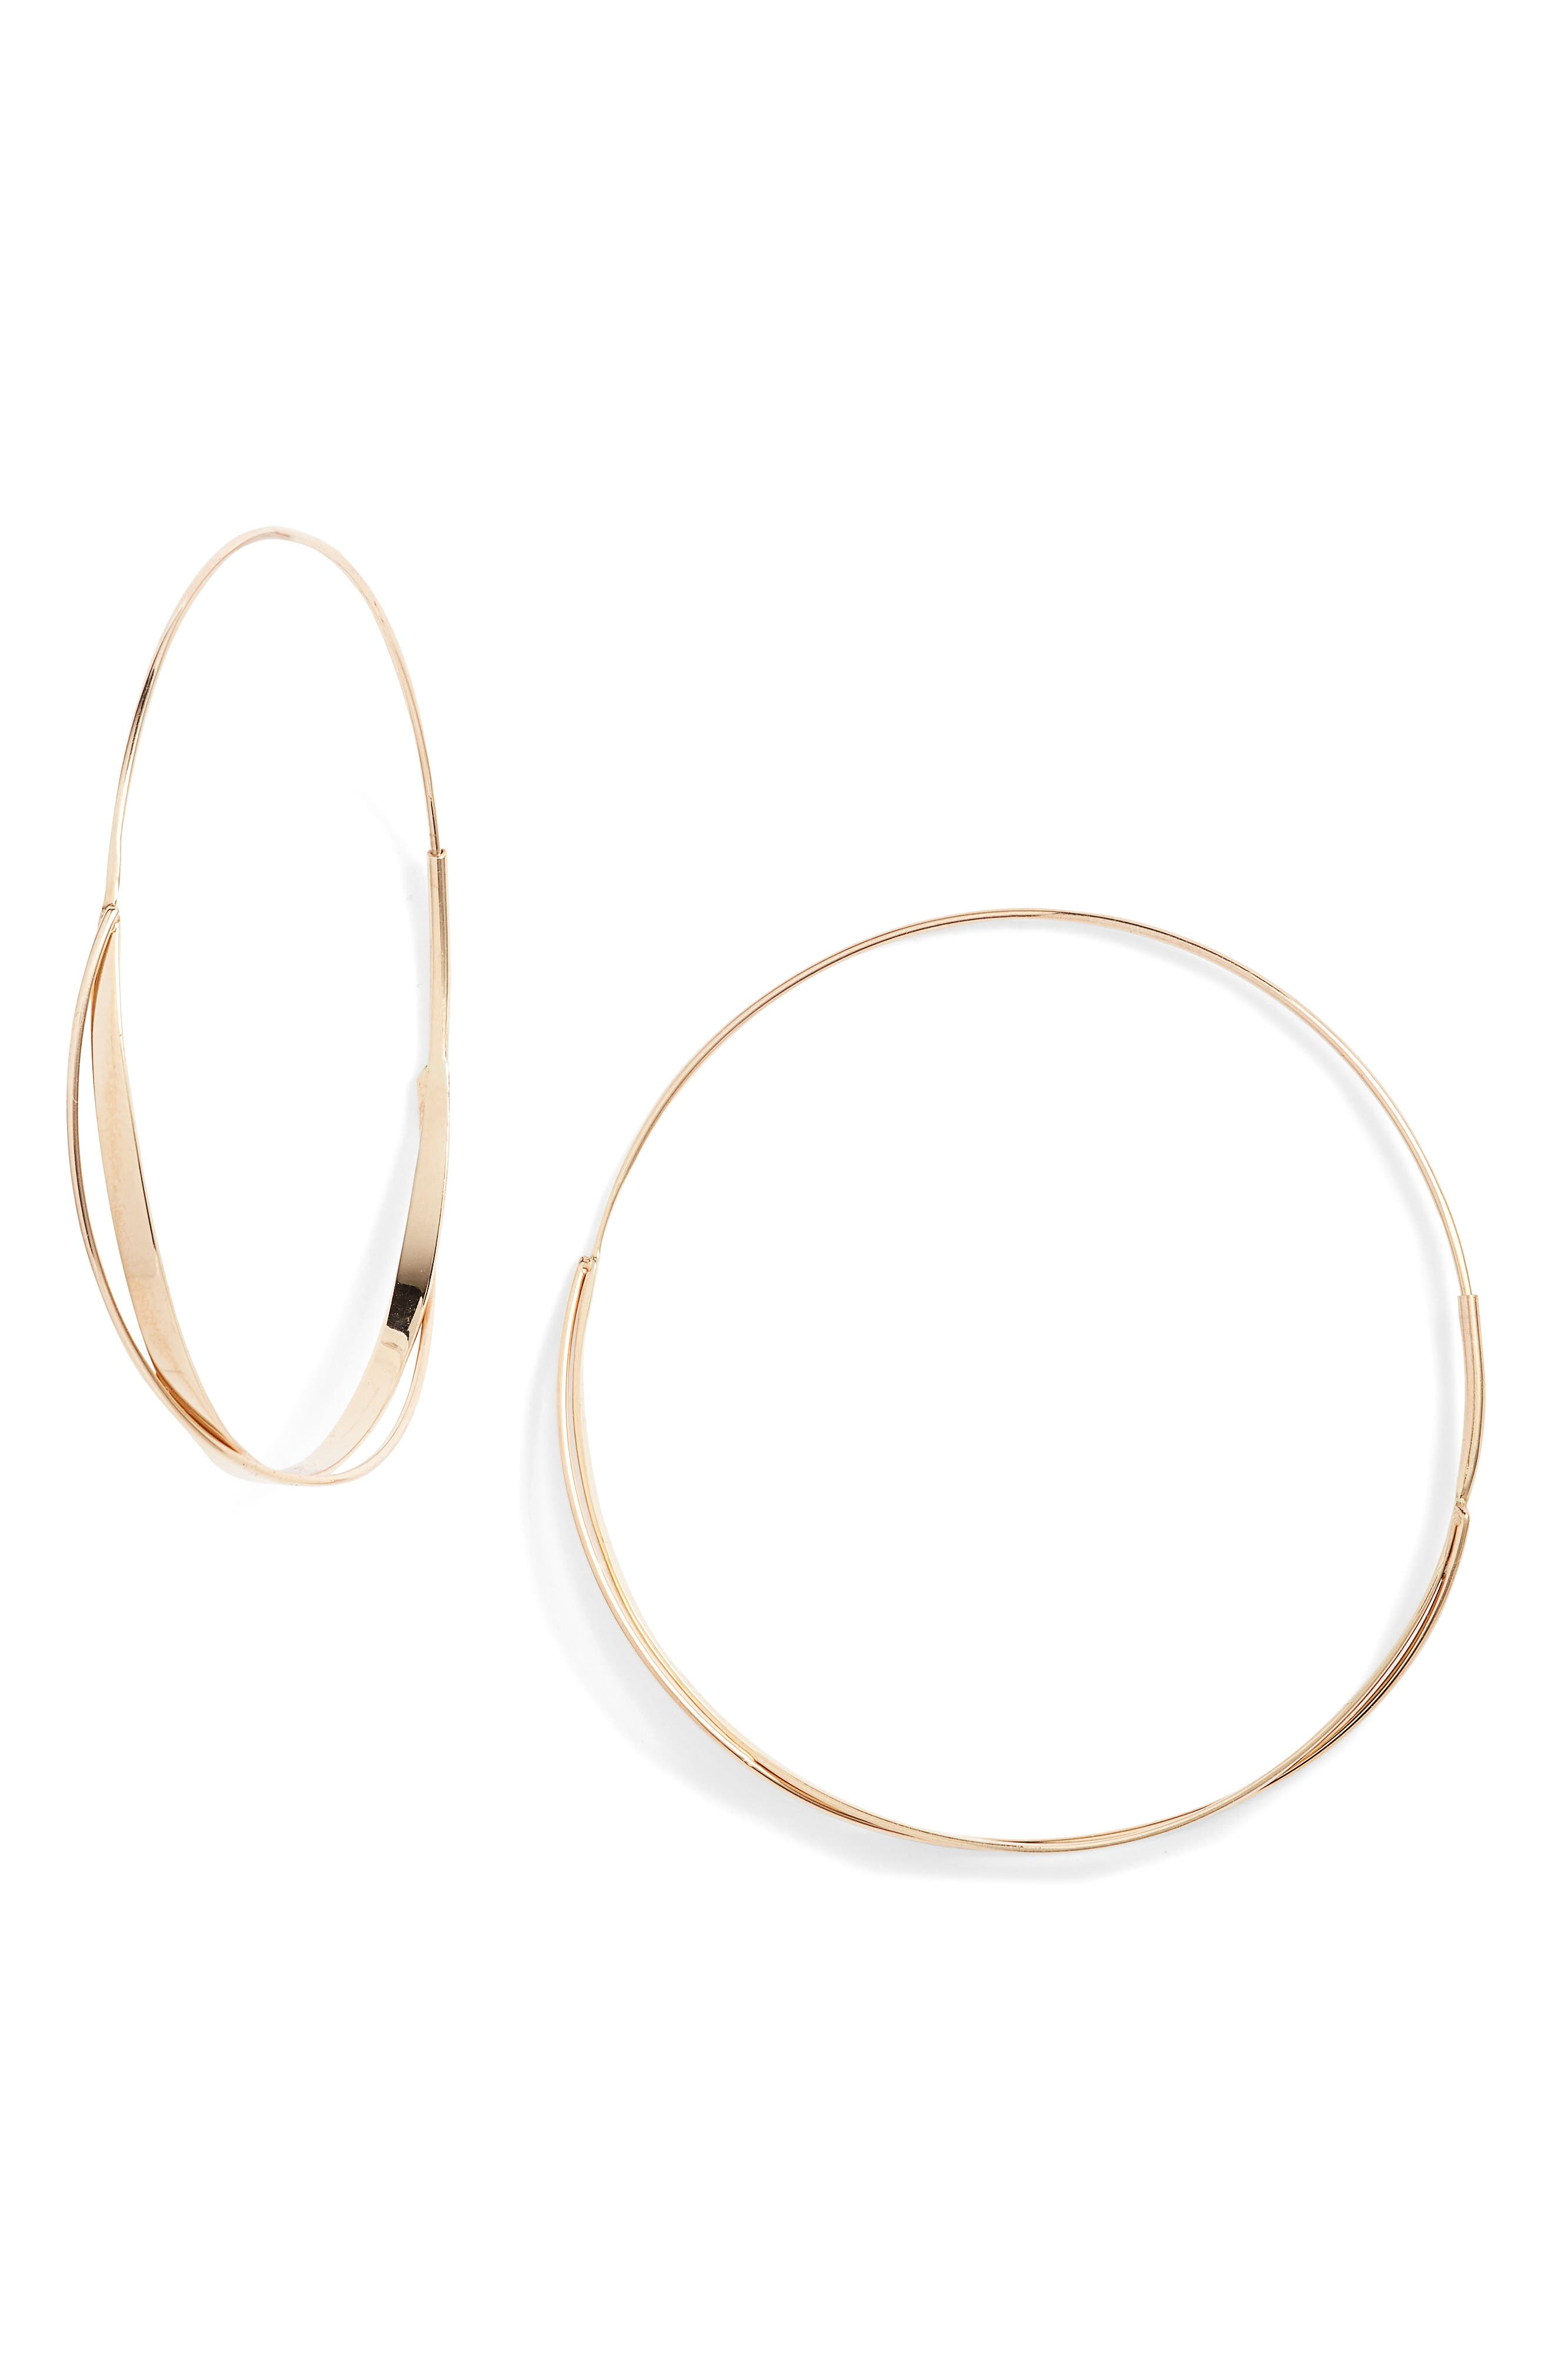 Lana Jewelry Medium Crisscross Magic Hoop